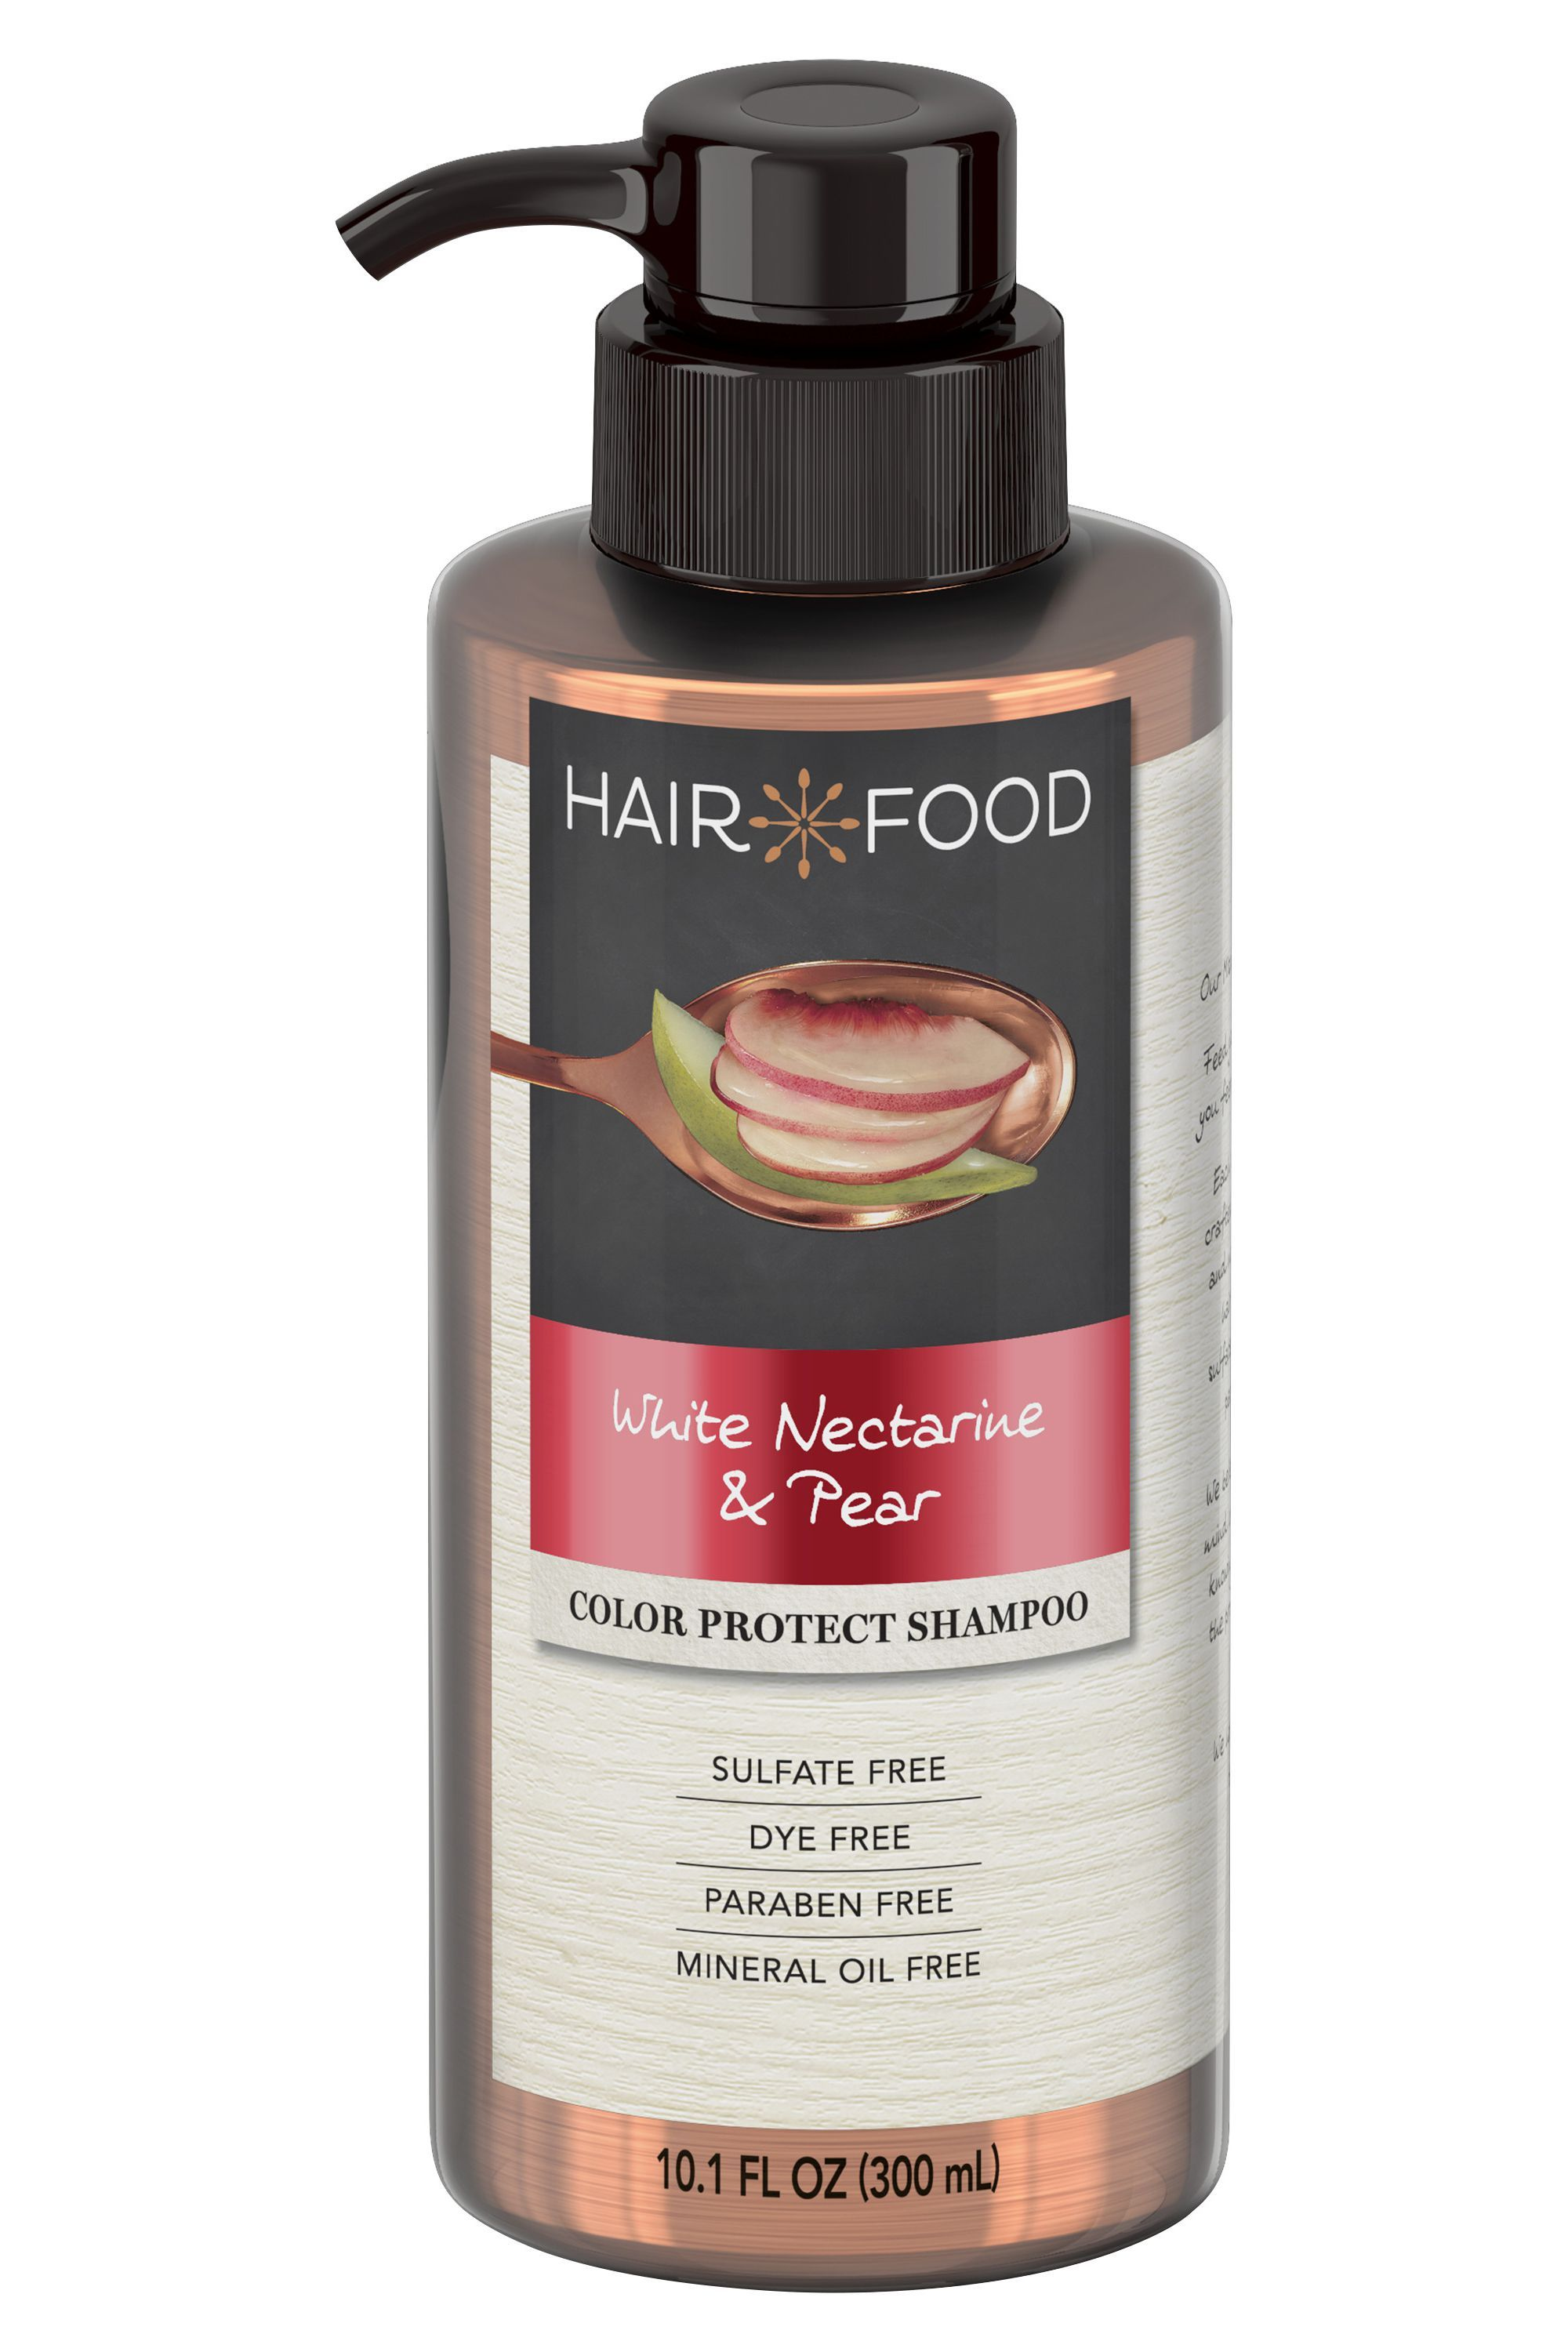 Hair Food Color Protect Shampoo with White Nectarine & Pear